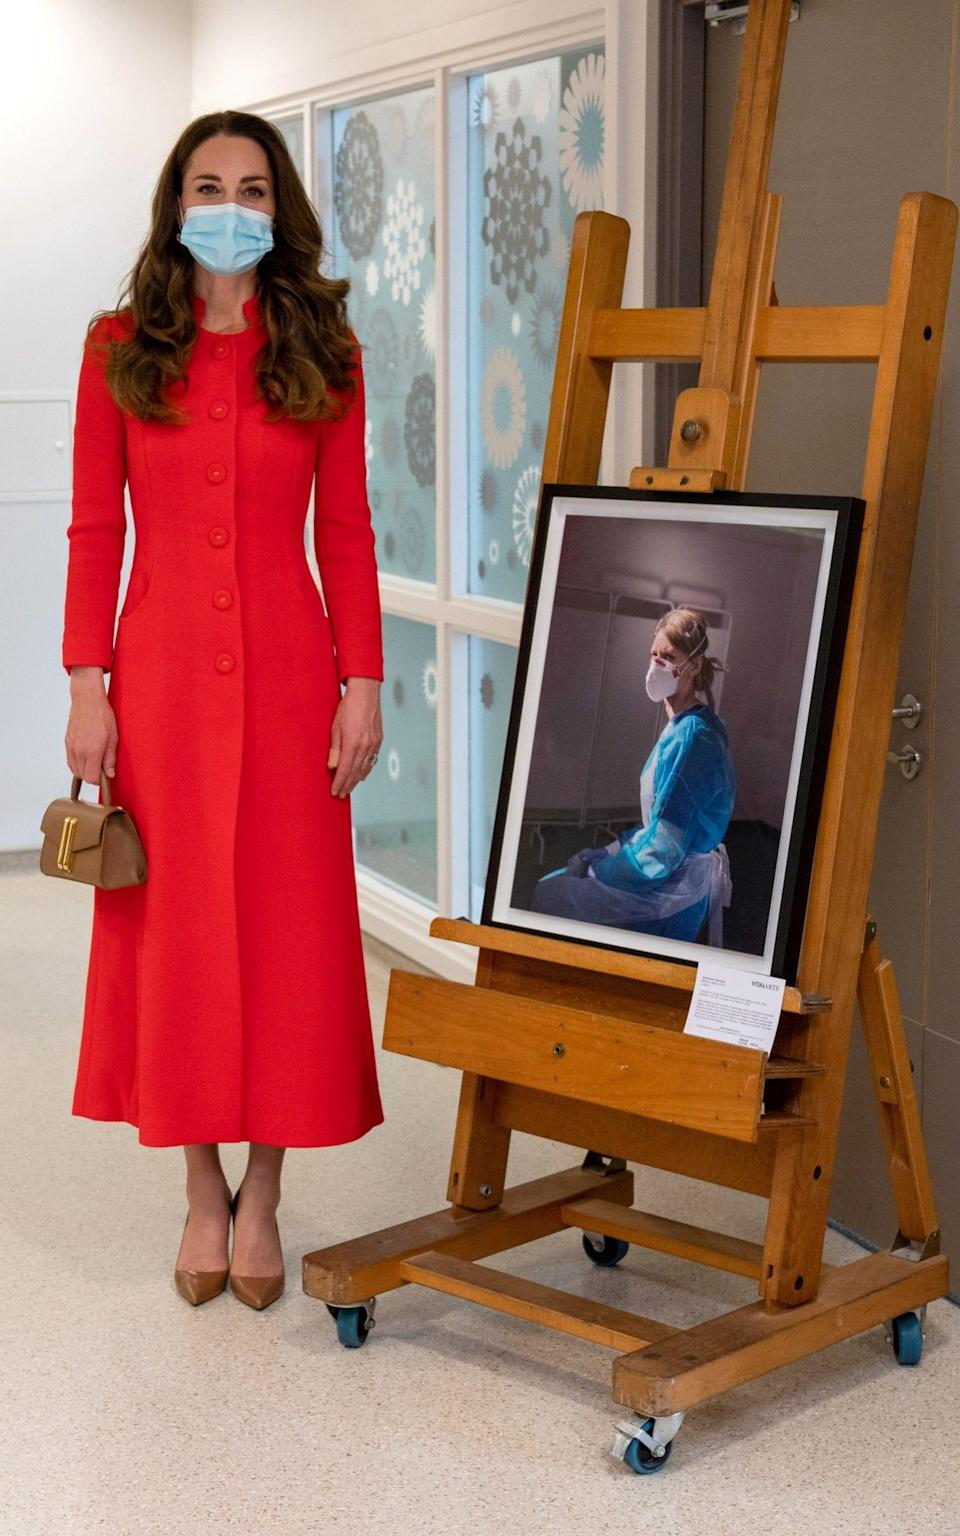 The Duchess of Cambridge on 7th May